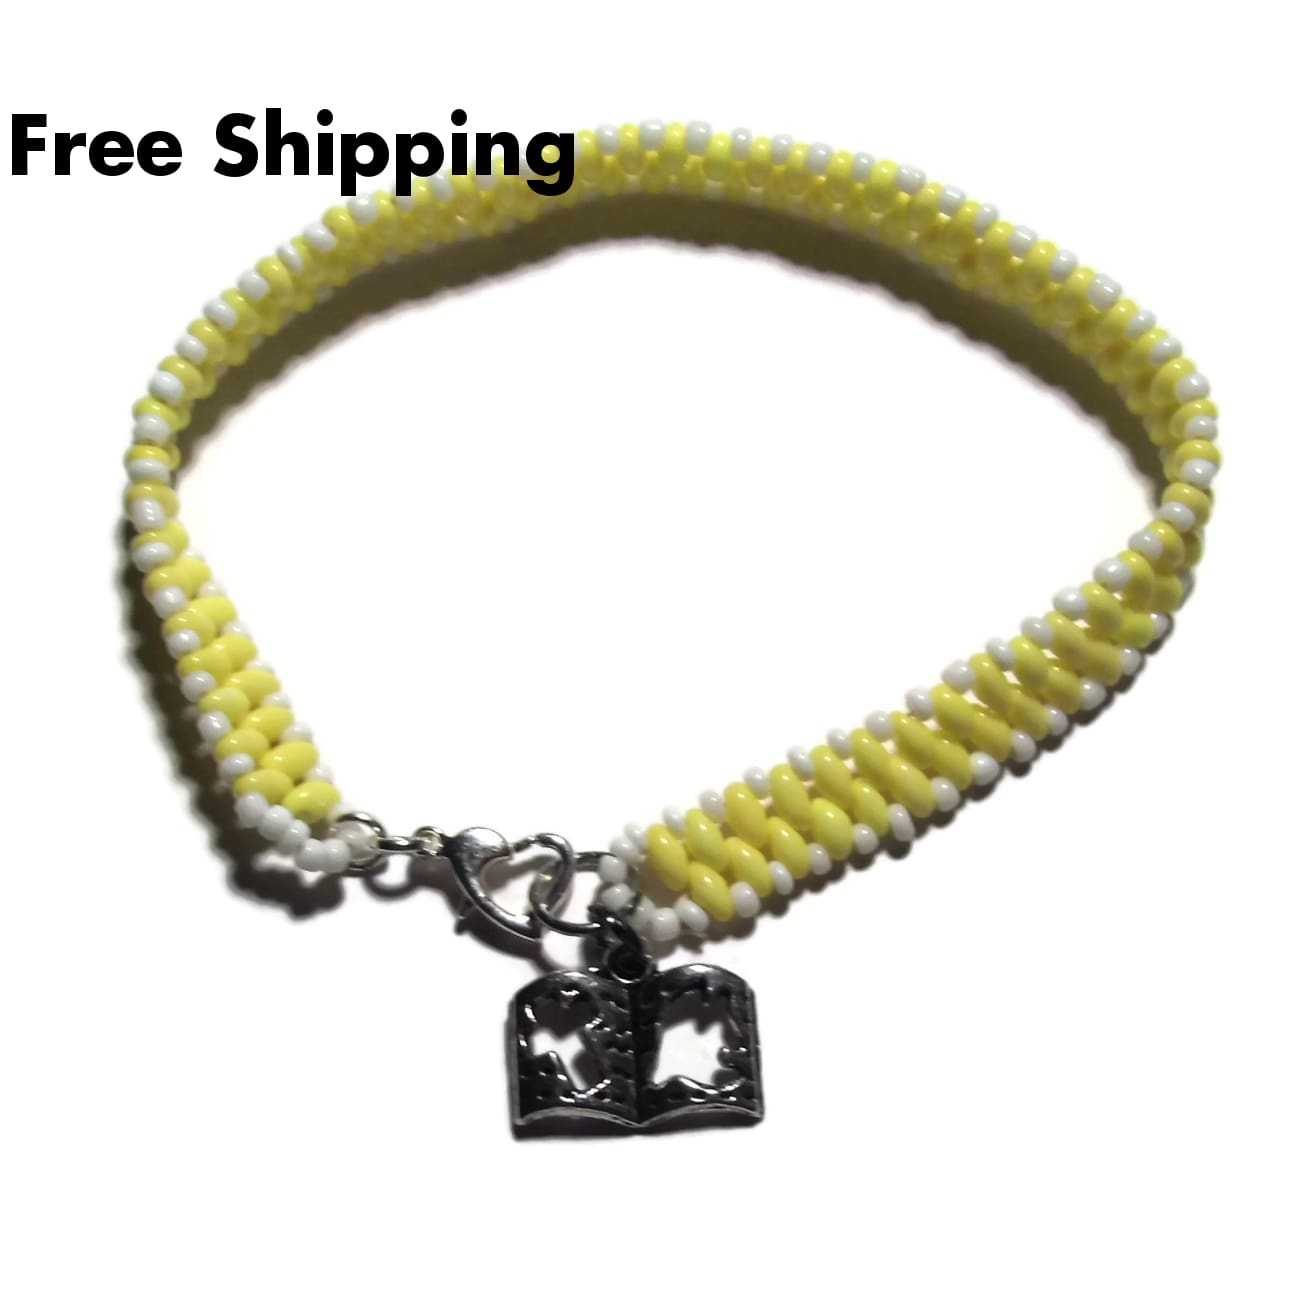 Plus Size Elegance Bible Charm Pale Yellow & White Glass Beaded Spring Easter Religious 8.25 Heart Clasp Bracelet - New Arrival